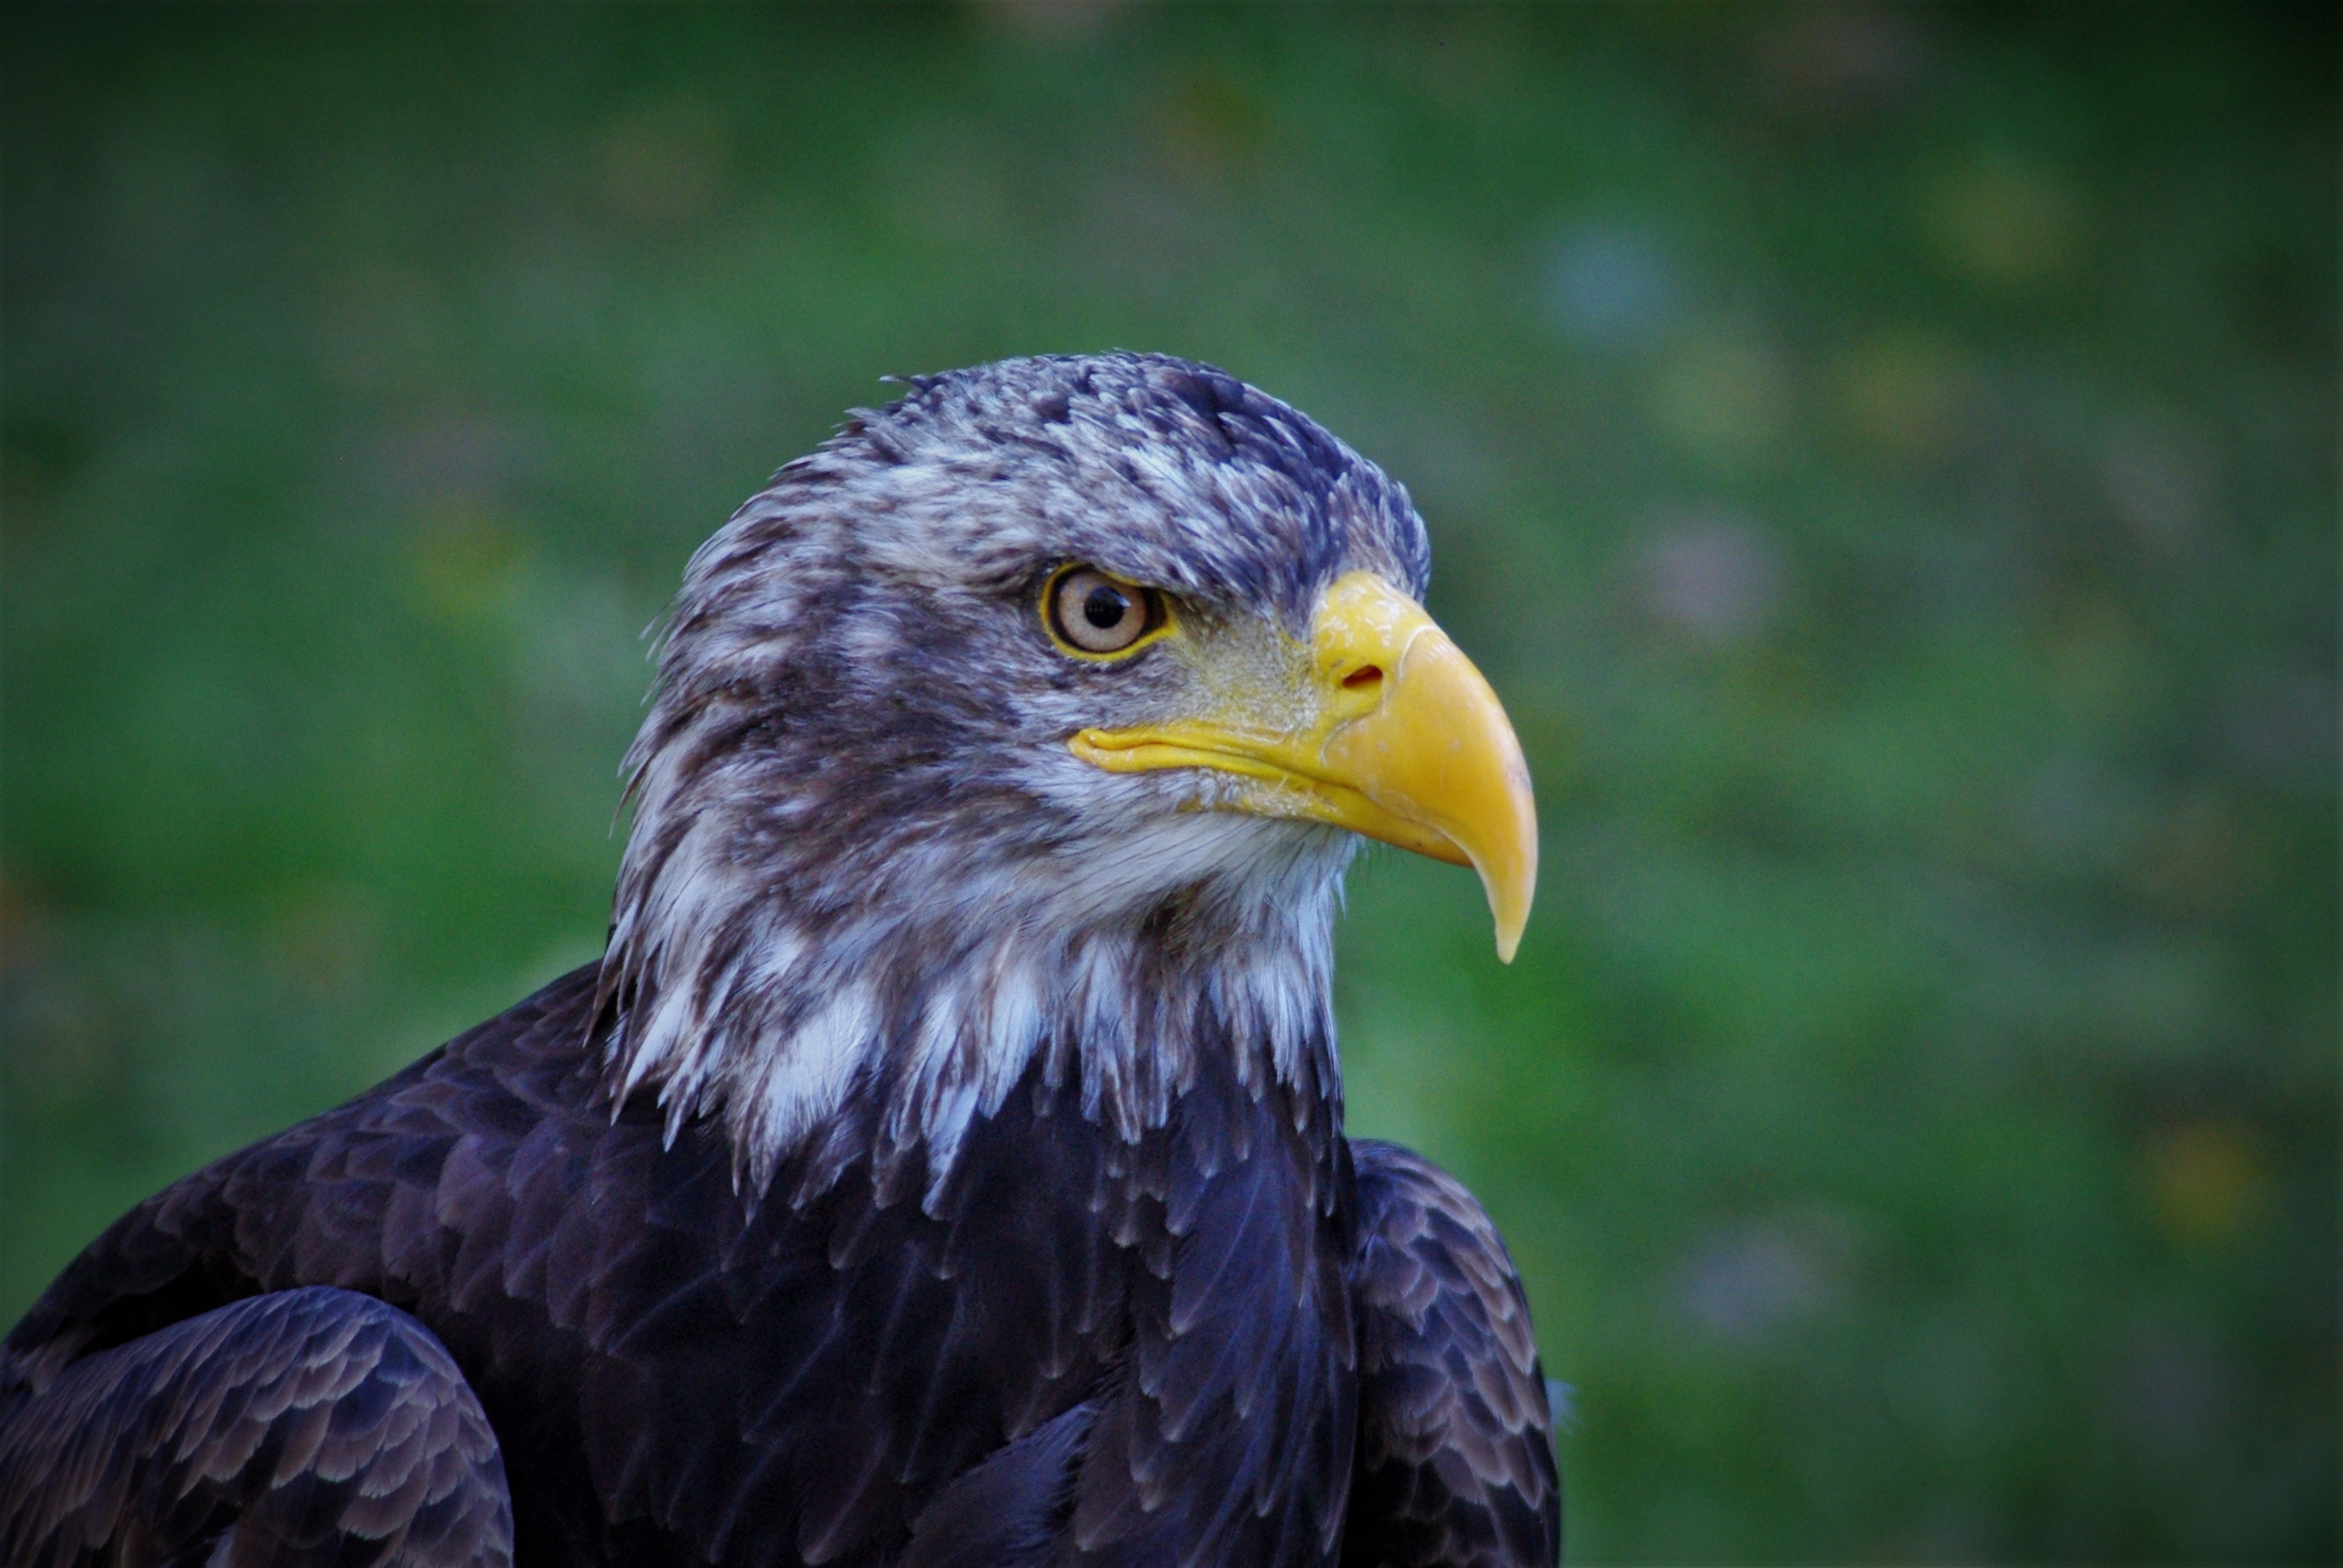 73601 download wallpaper Animals, Bald Eagle, White-Headed Eagle, Eagle, Bird, Predator, Beak screensavers and pictures for free